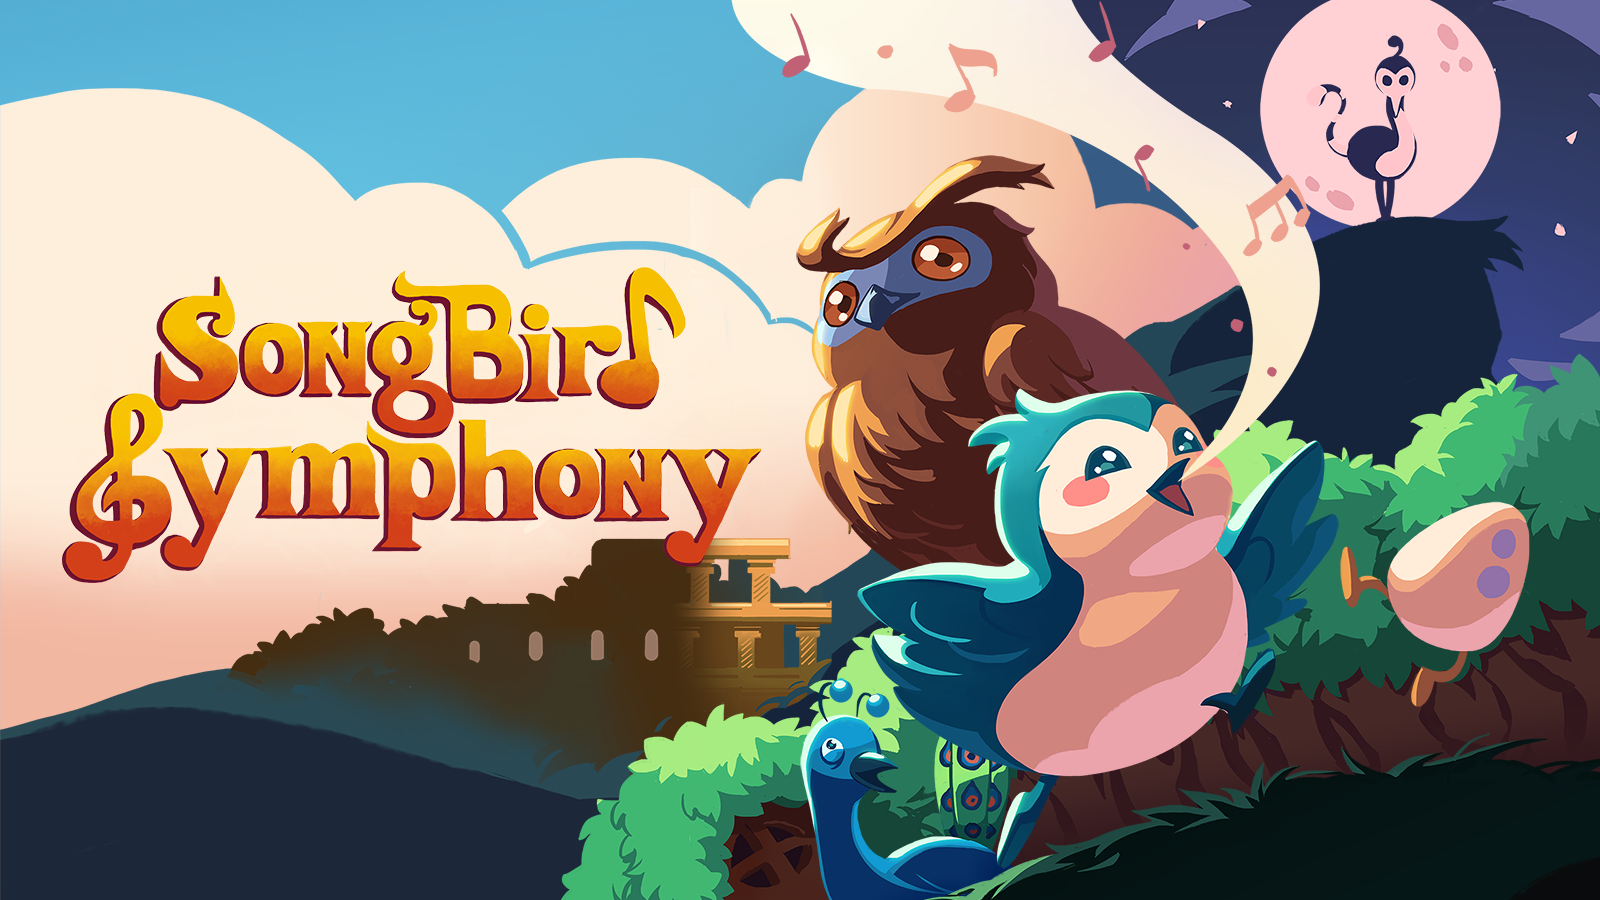 Rhythm game meets adorable platformer: Songbird Symphony musical trailer released